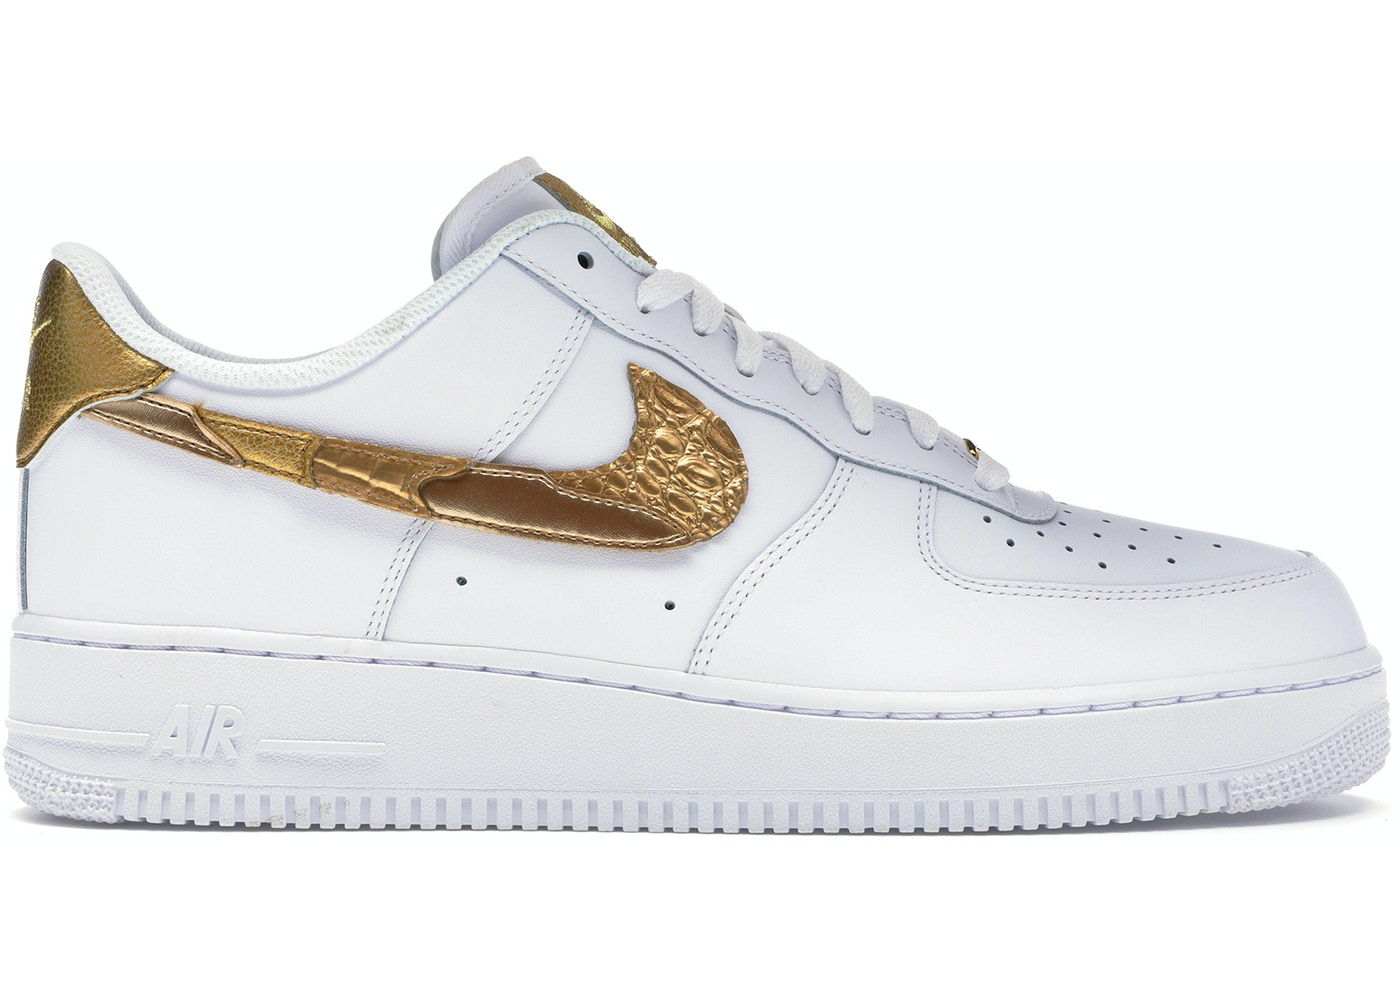 289f63e1137 Air Force 1 Low CR7 Golden Patchwork - AQ0666-100